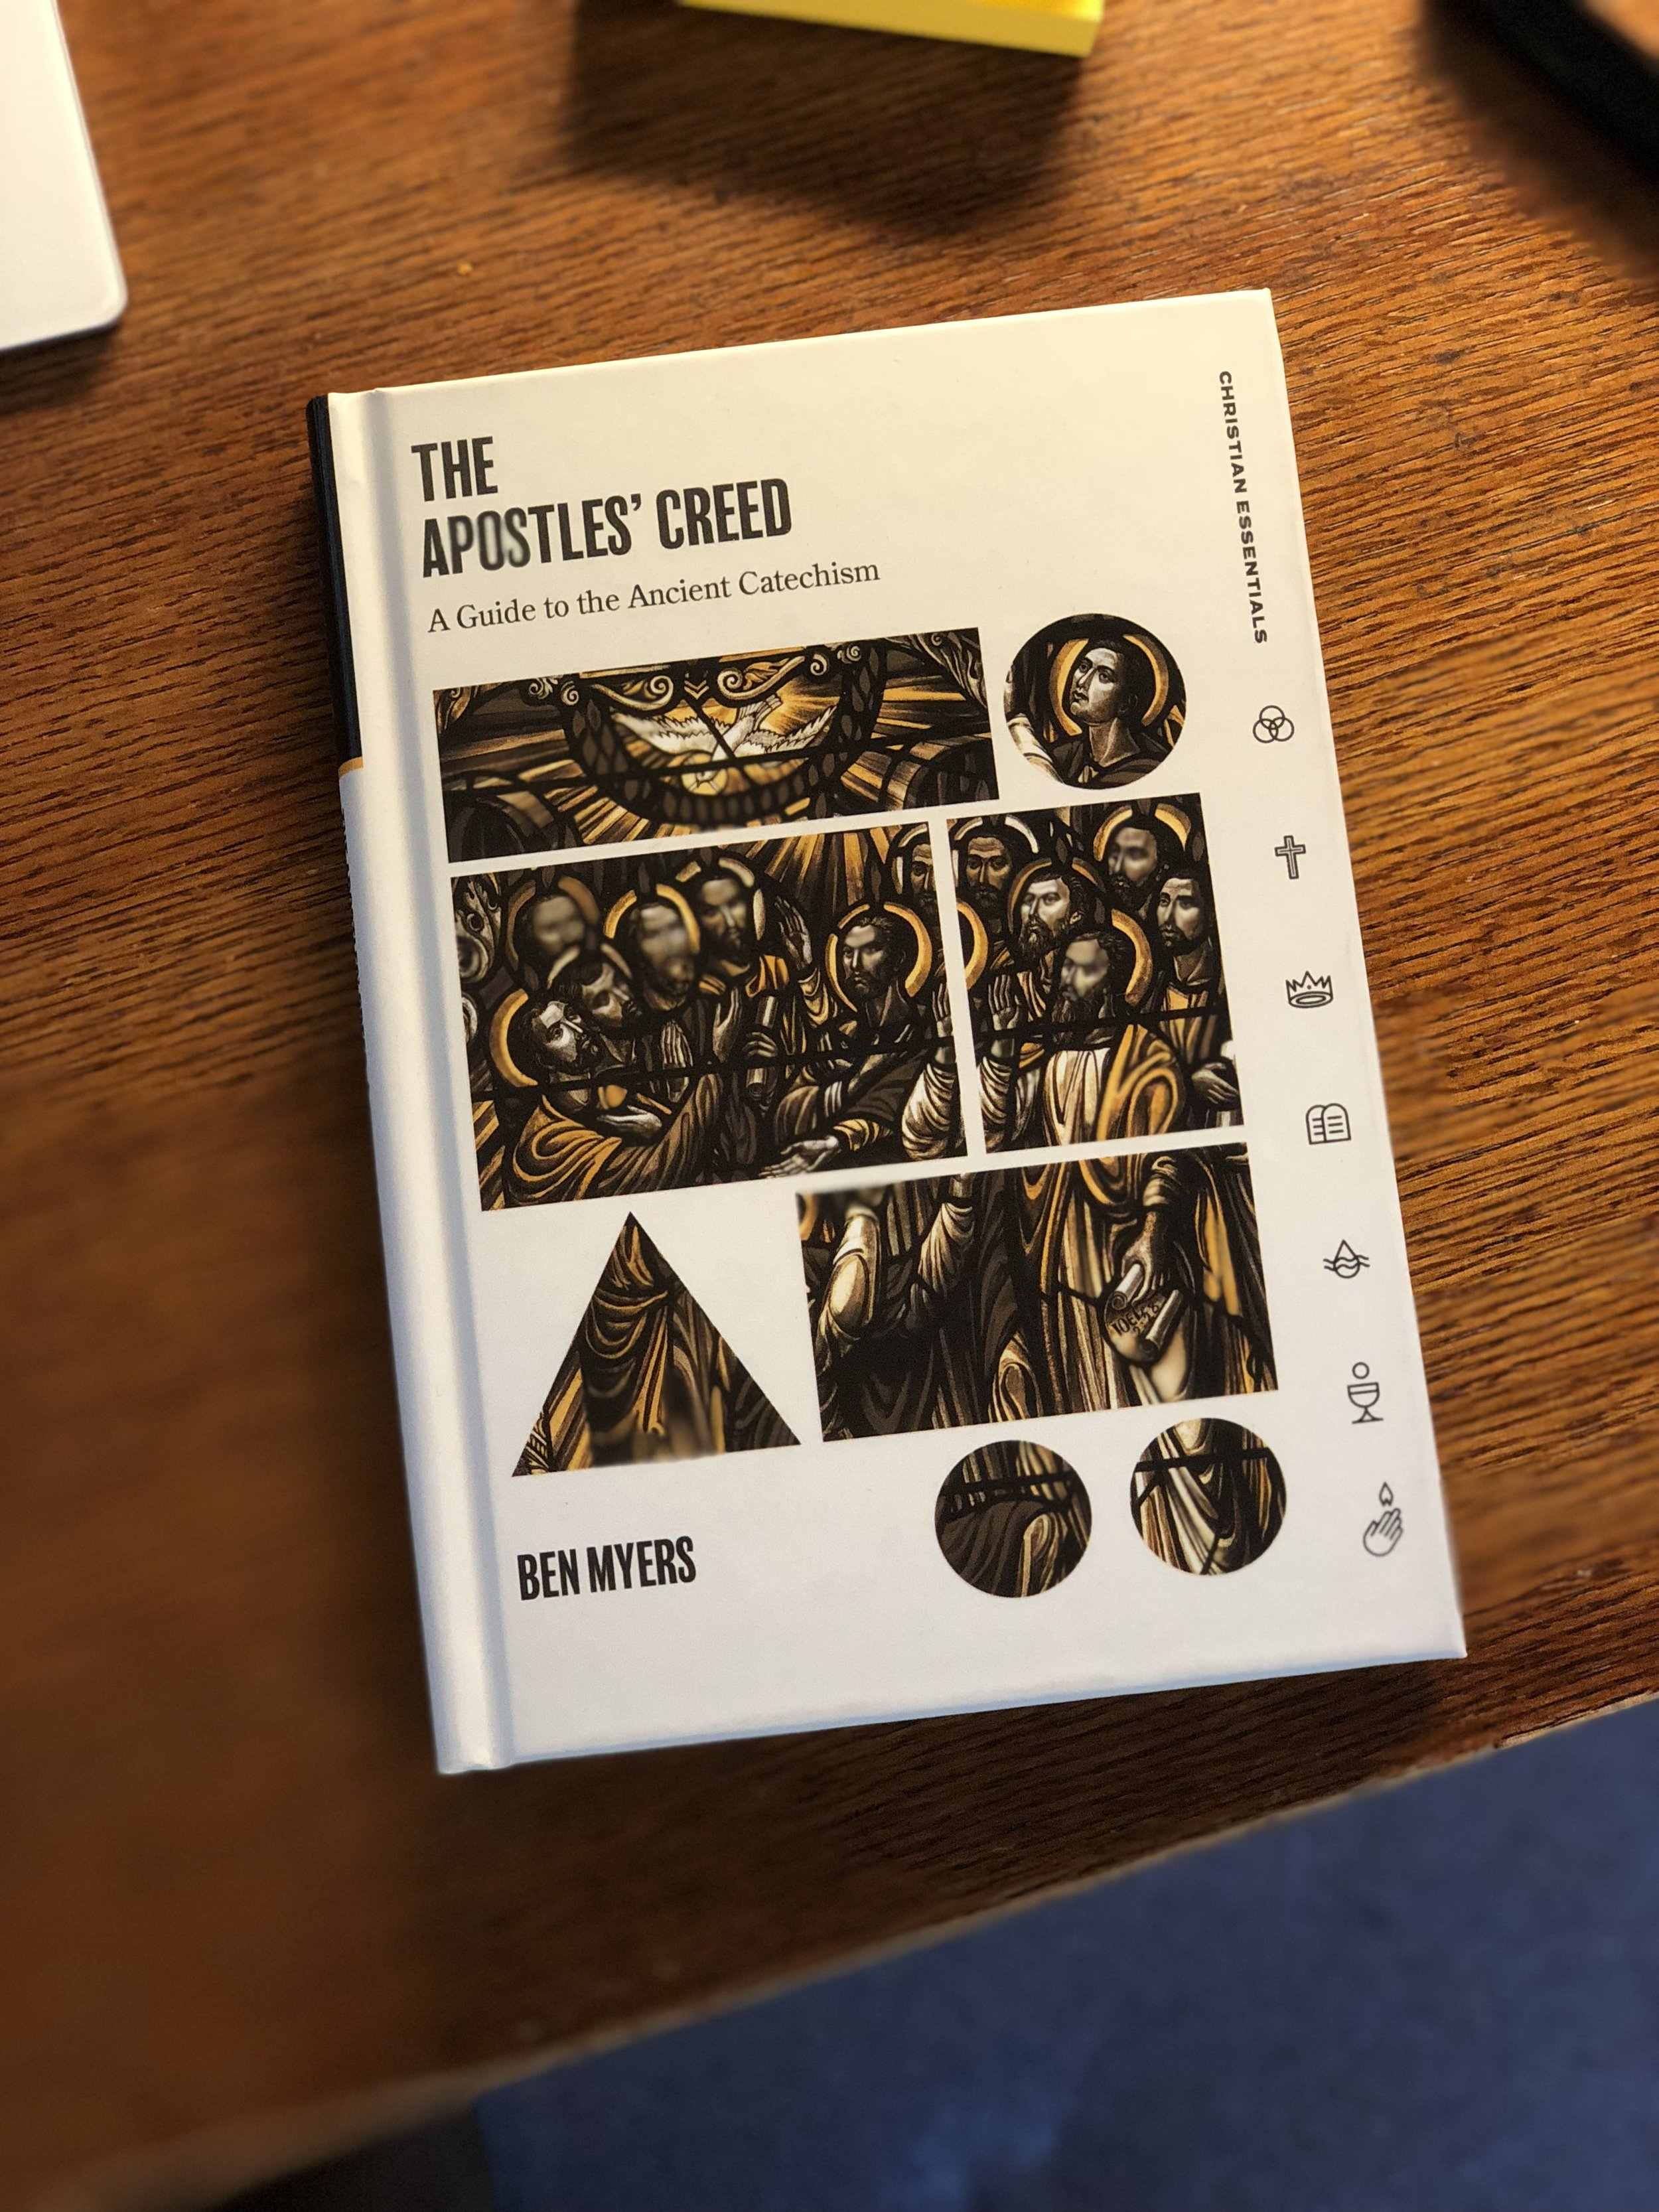 The Apostles' Creed  by Ben Myers